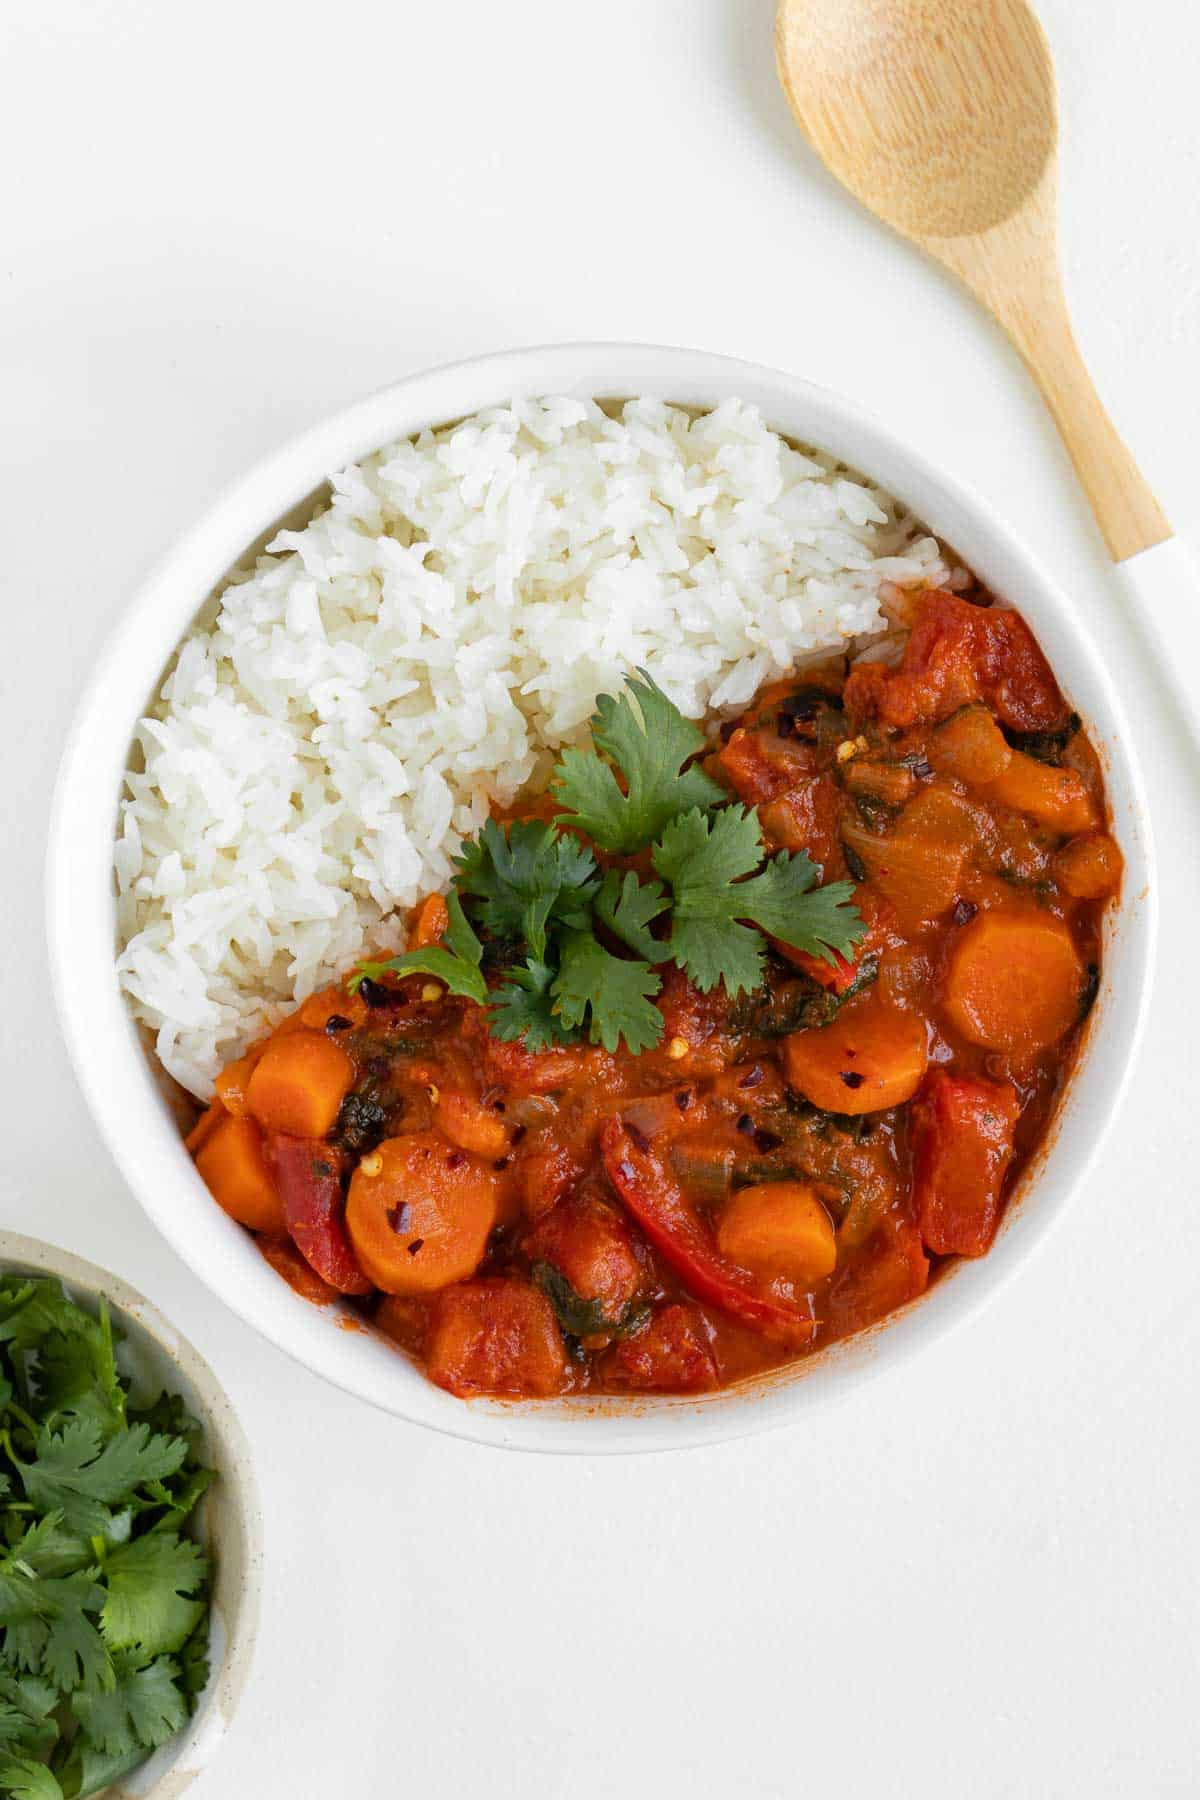 vegan thai red curry and white rice in a bowl alongside a wooden spoon and bowl of cilantro